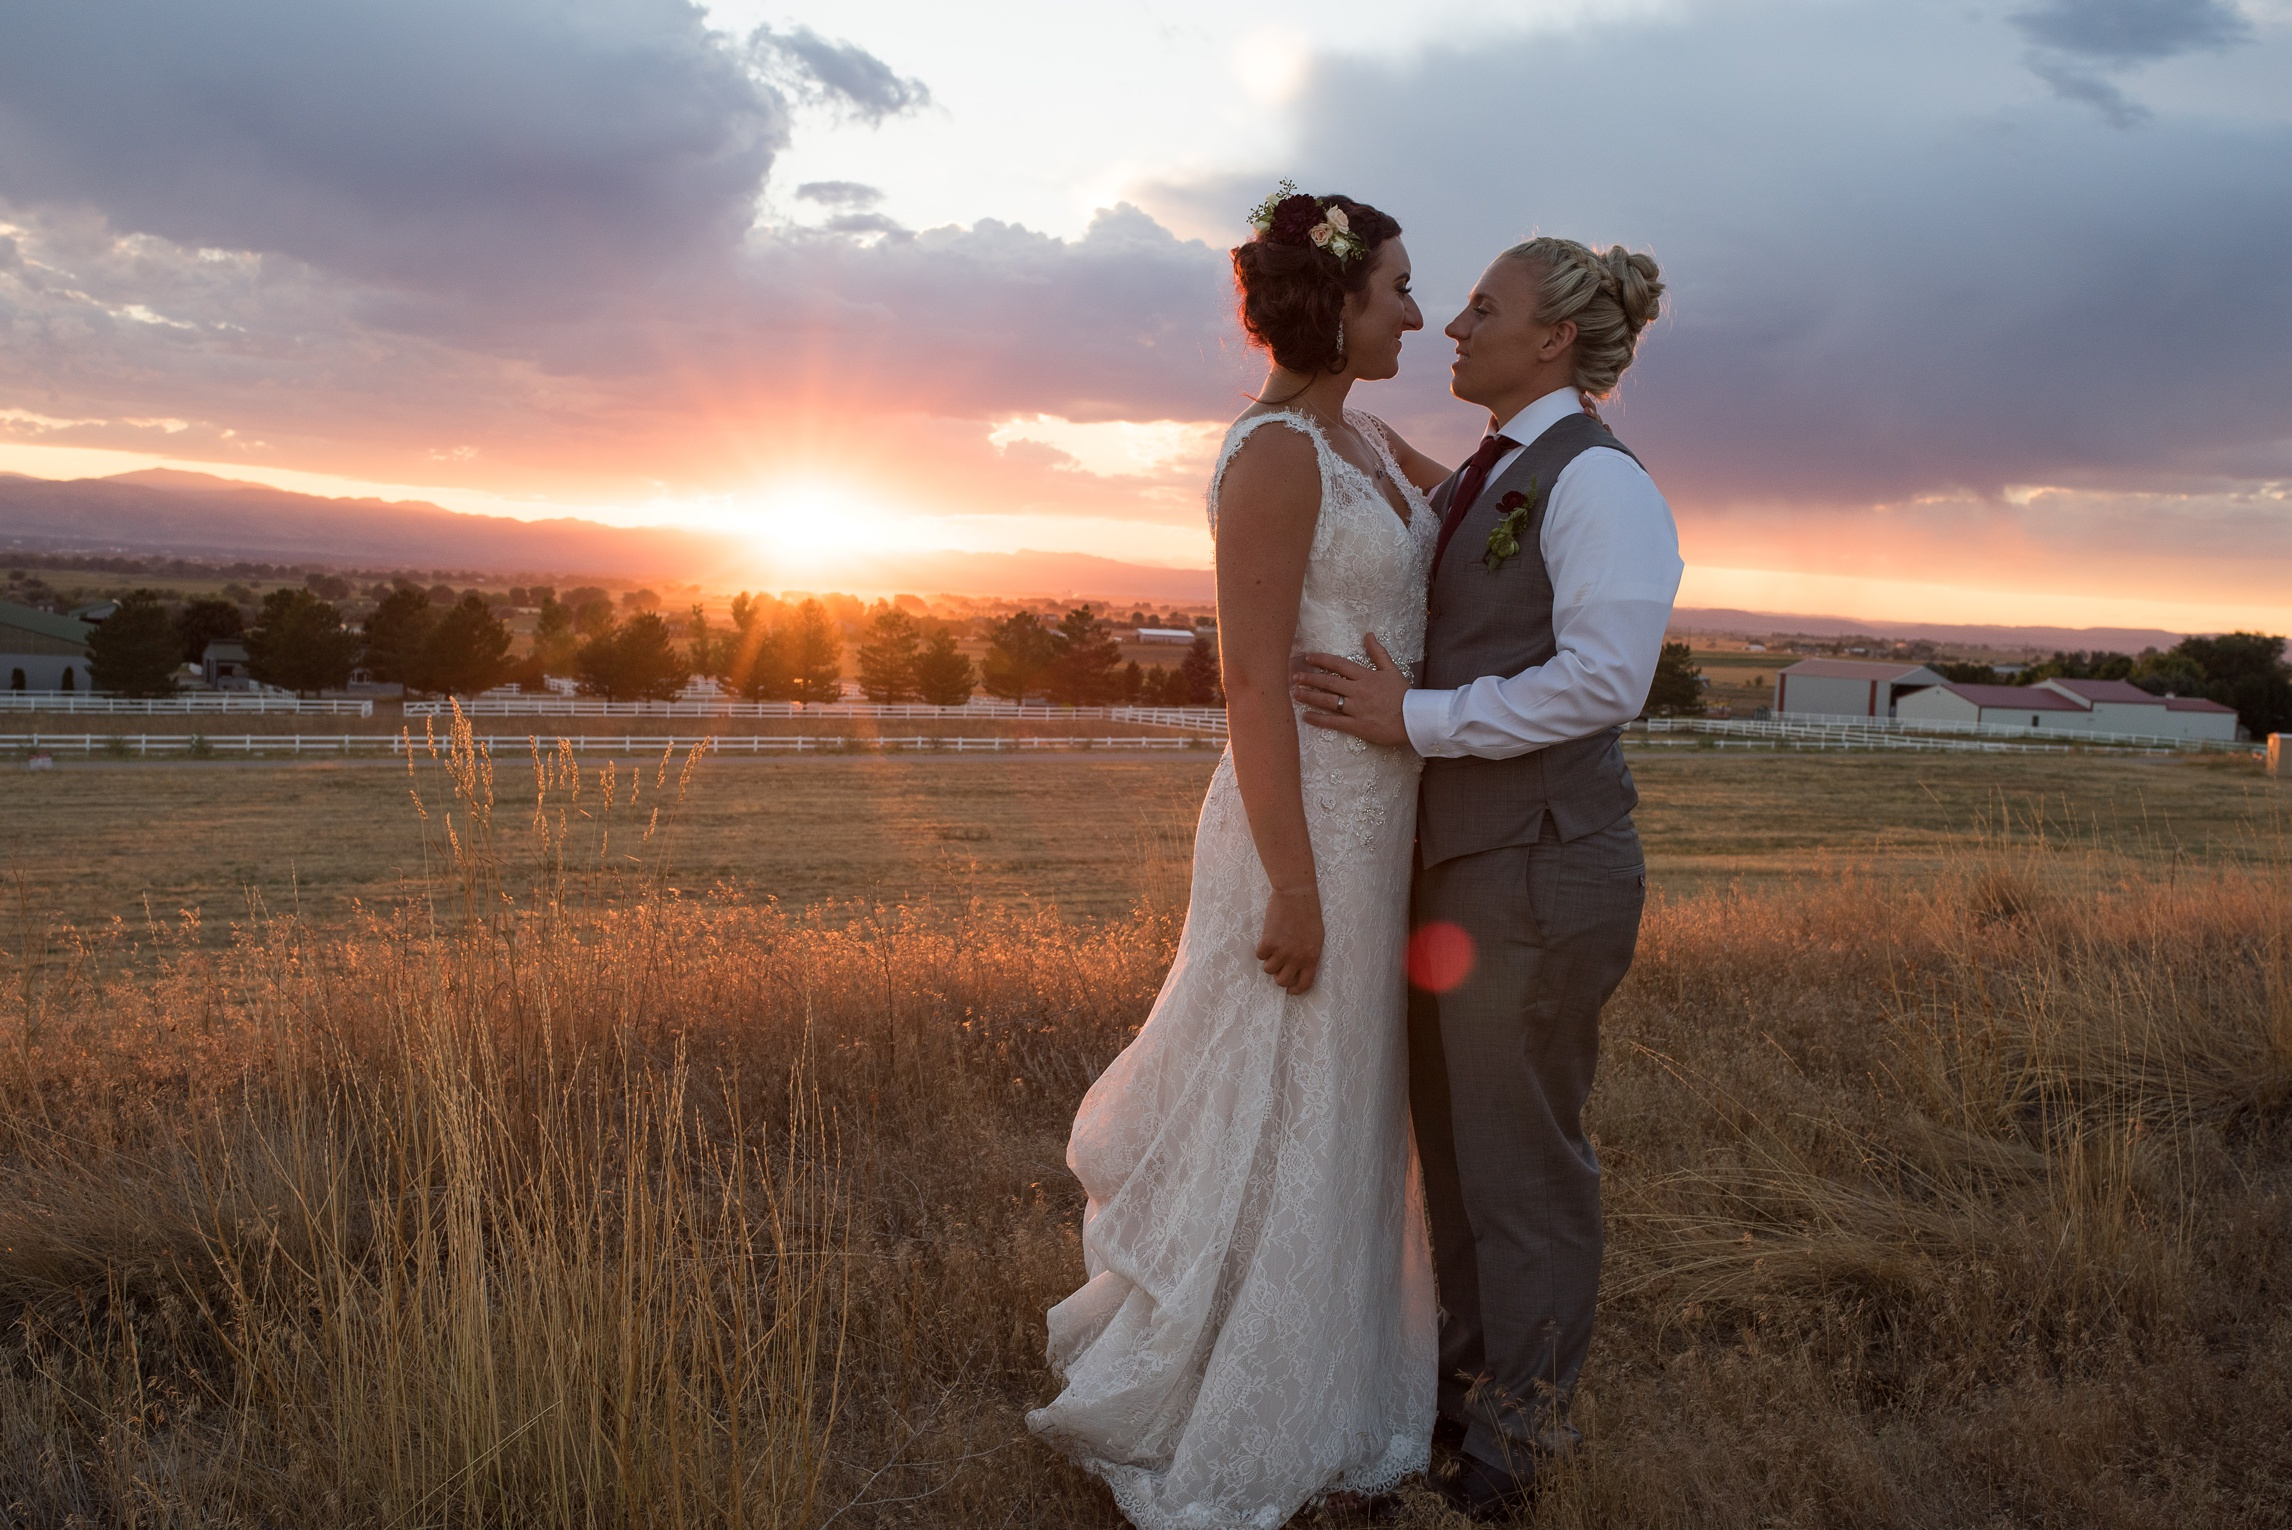 Two brides at sunset on their wedding day at Windsong Estate outside of Fort Collins, Colorado. Wedding photography by Sonja Salzburg of Sonja K Photography.